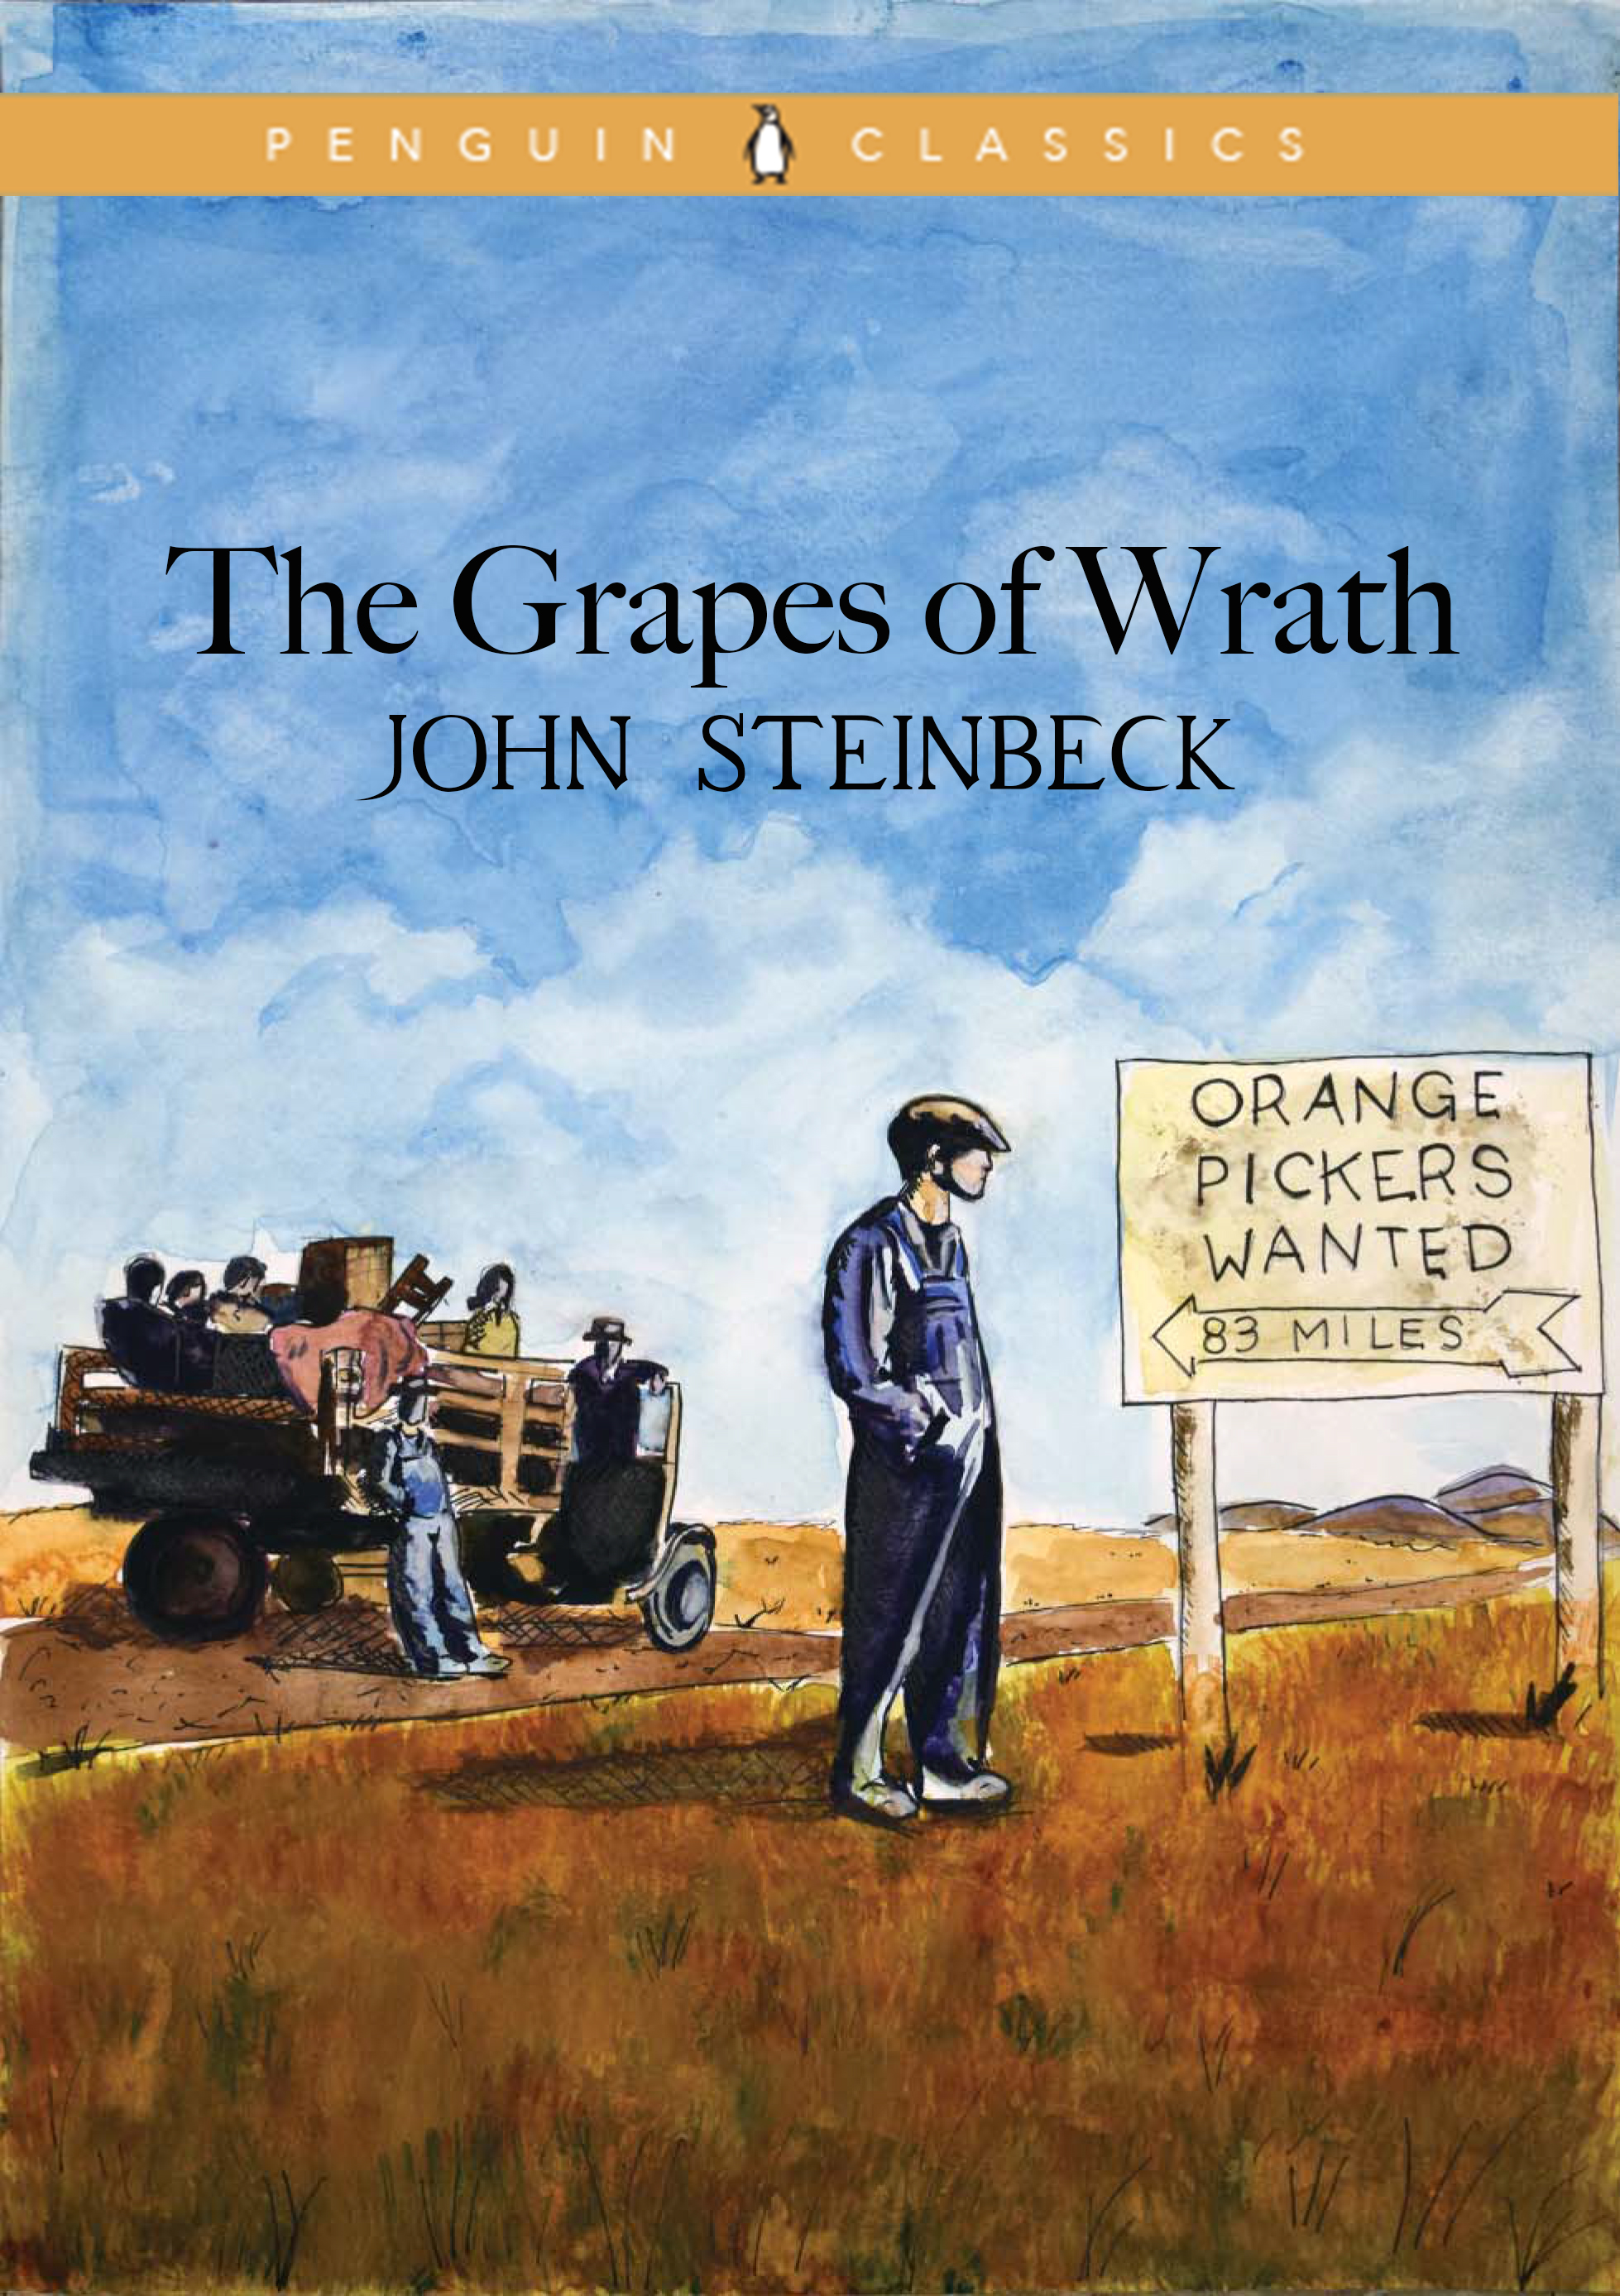 grapes-of-wrath-book-cover.jpg